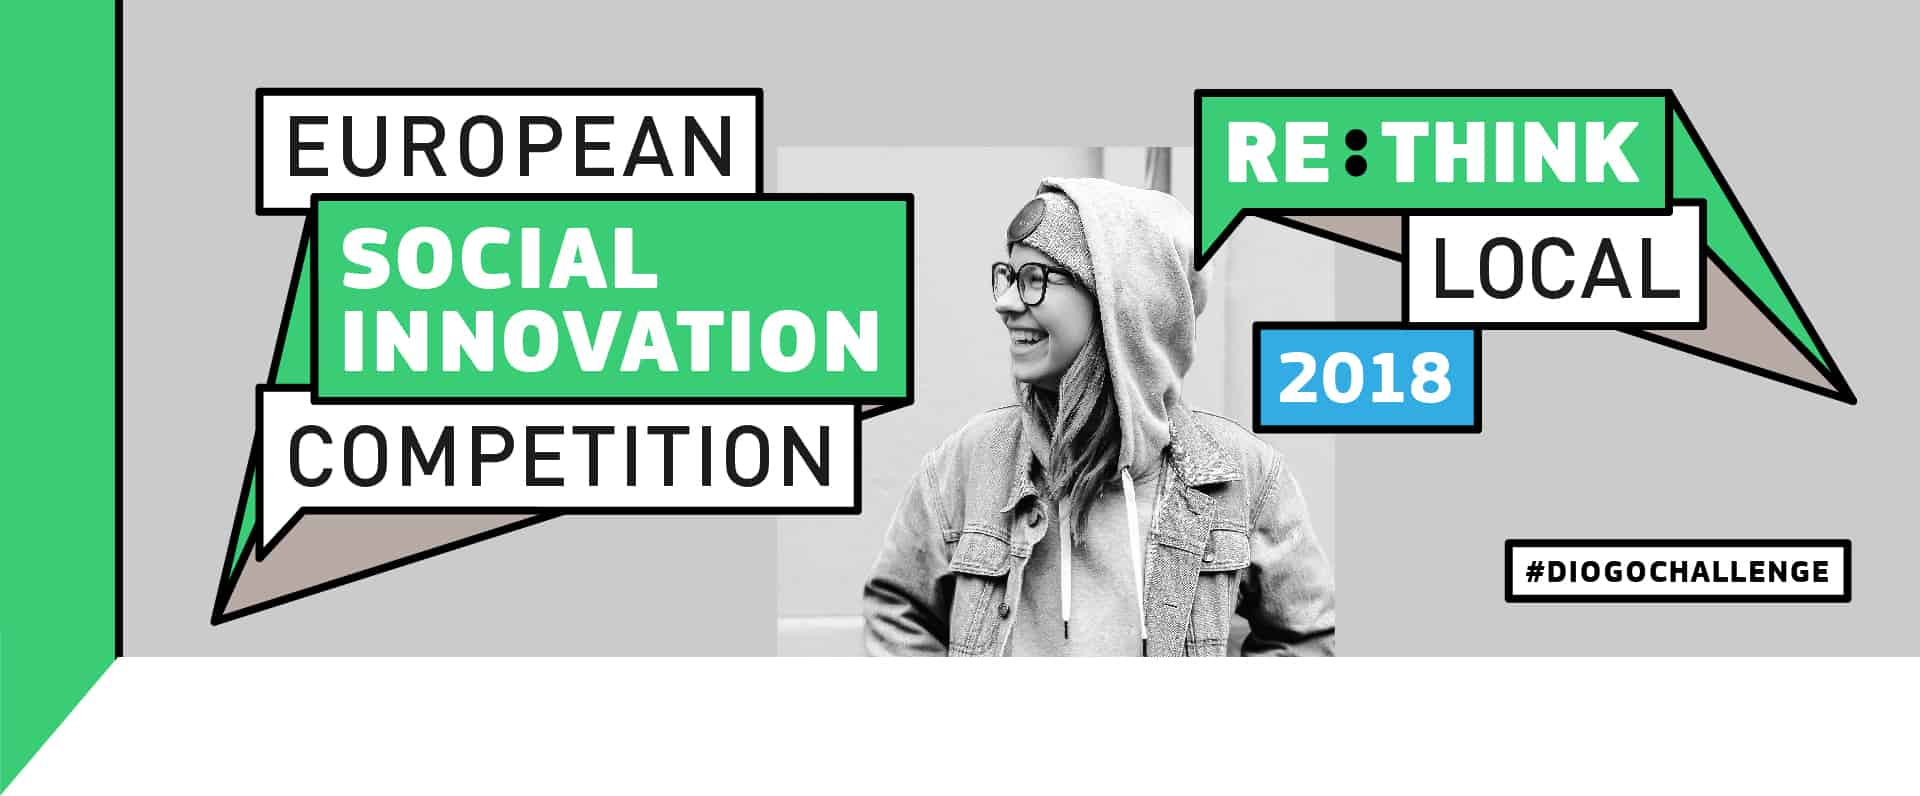 EU Social Innovation Competition: Meet The 10 Impact Ventures Poised To Change The World